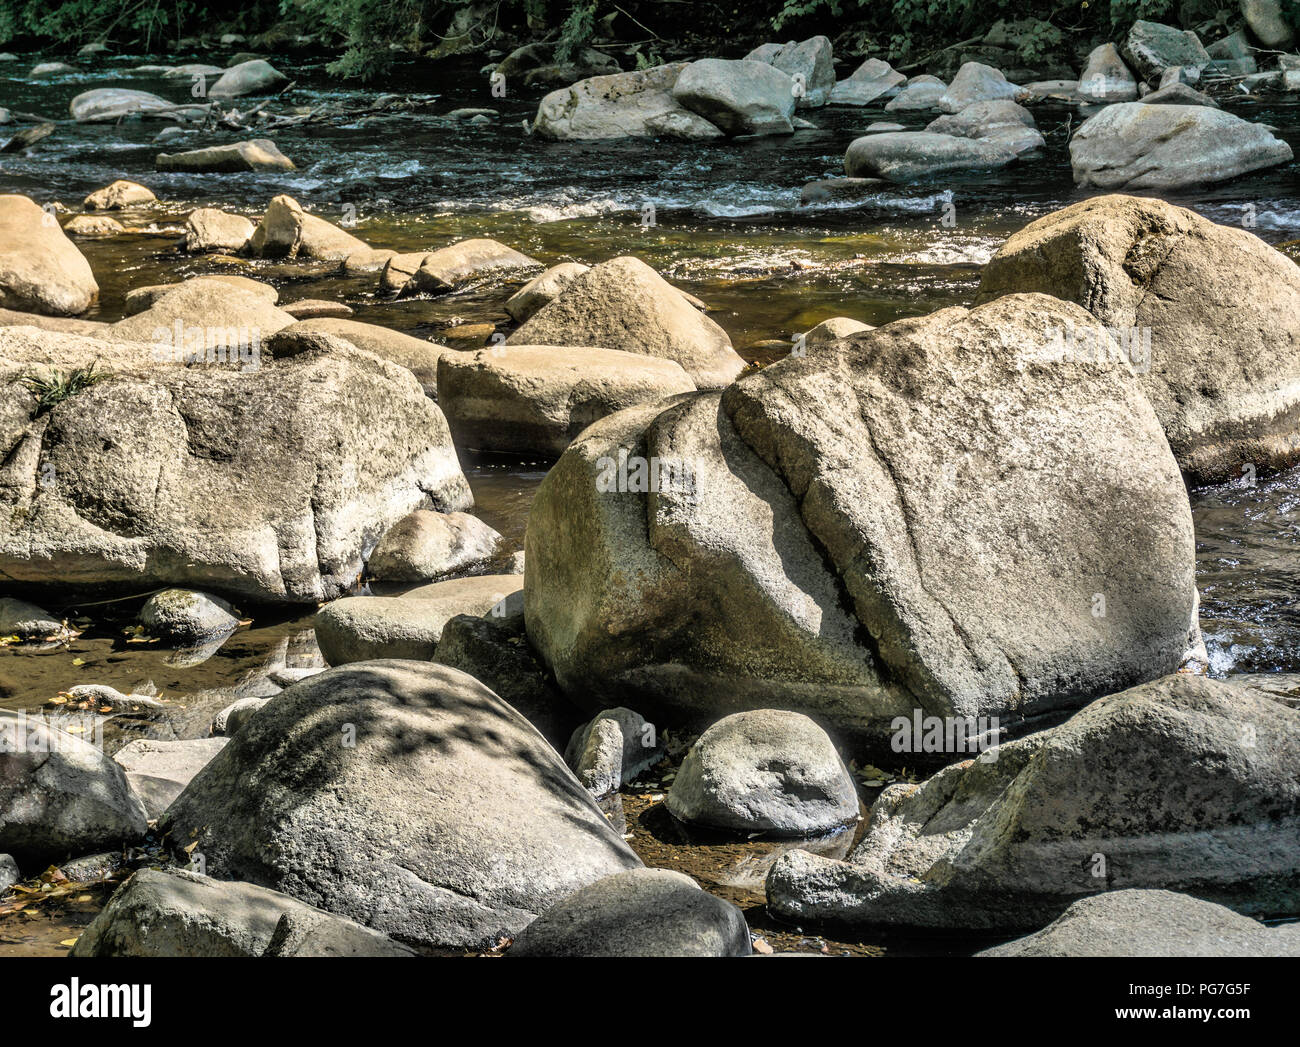 Large stones, boulders and boulders in the Bode near Thale, as places for rest, contemplation and meditation. - Stock Image